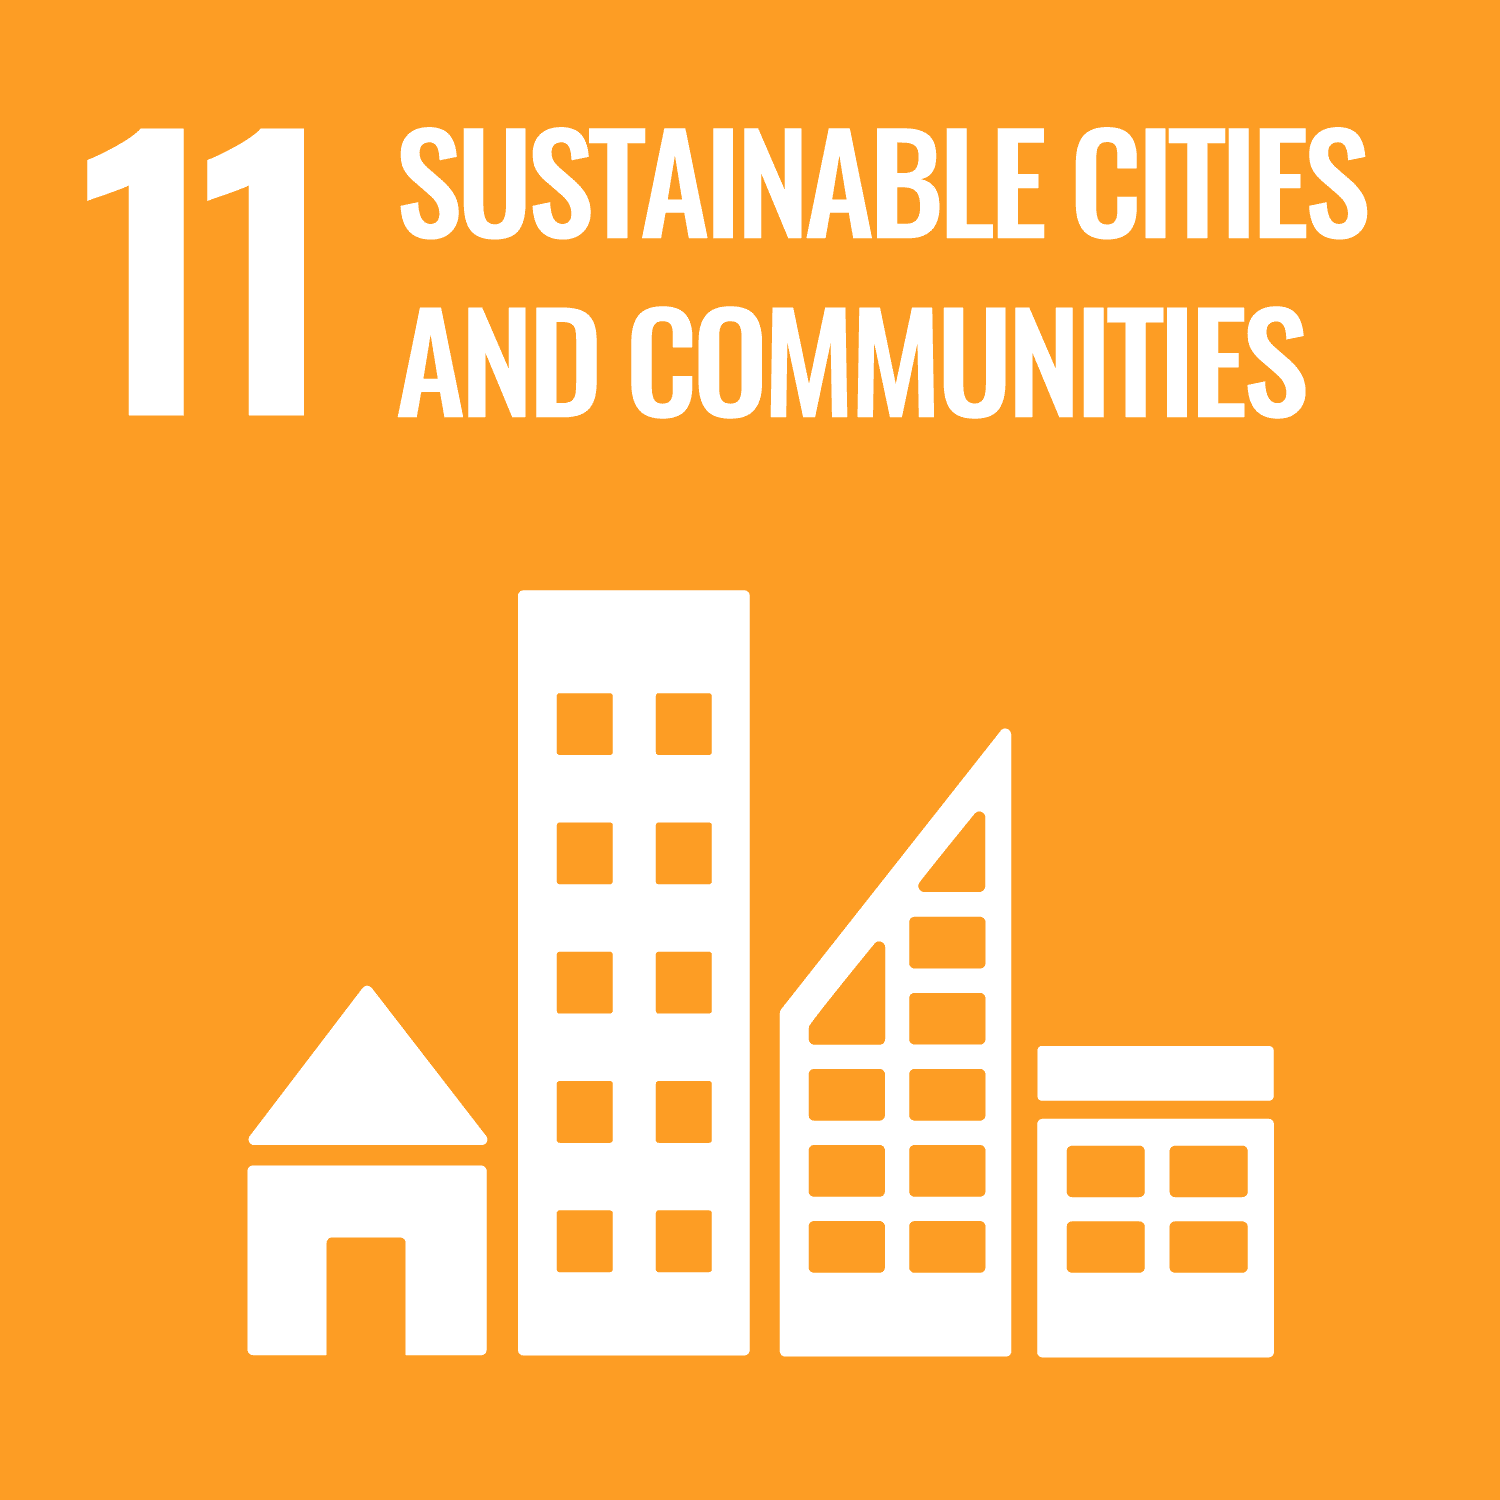 SDG Goal 11-Sustainable Cities and Communities